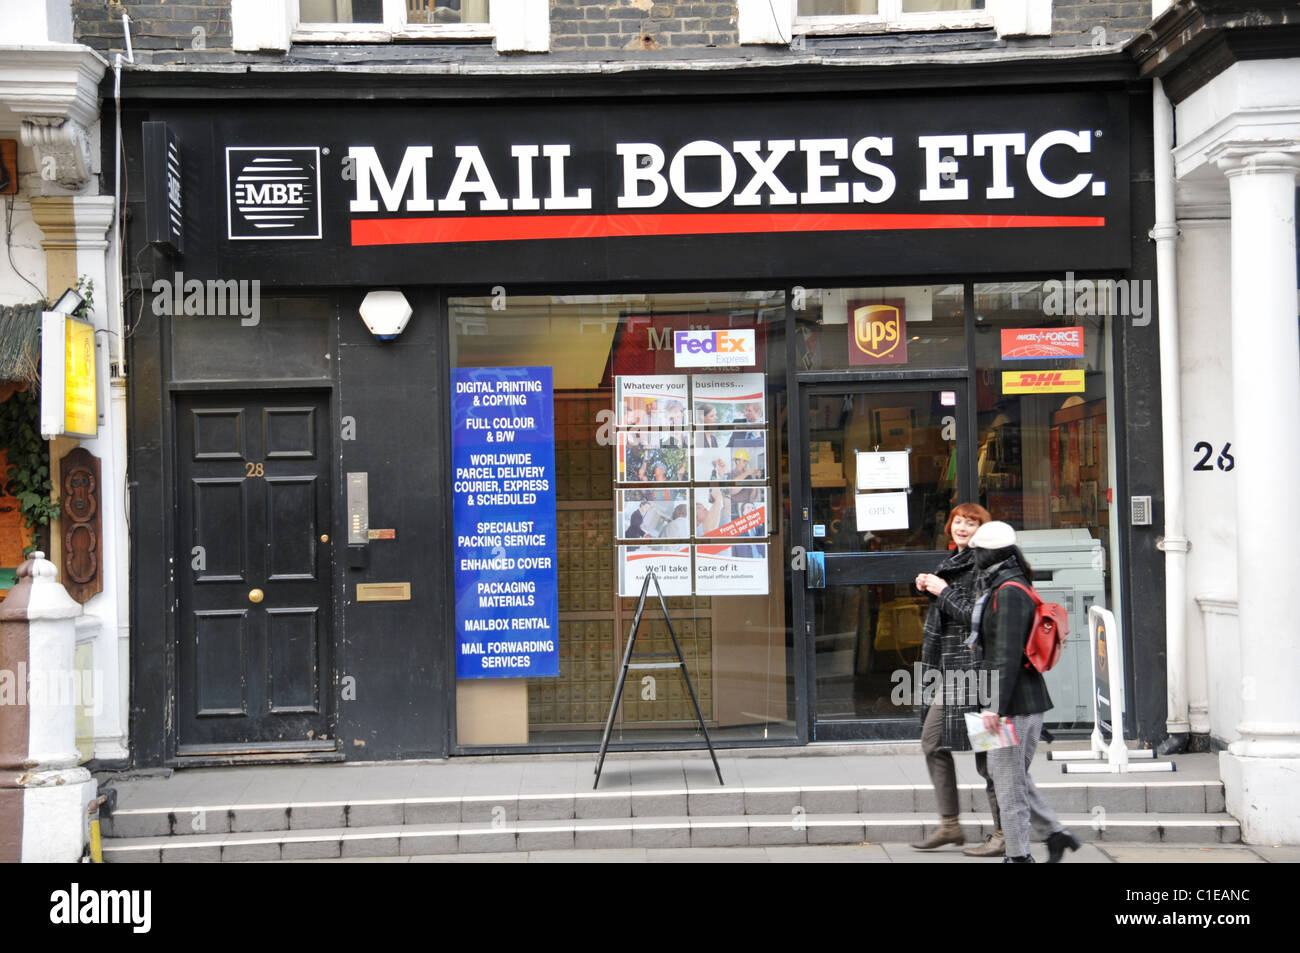 'Mail Boxes Etc' mail box services commercial private mail collection - Stock Image